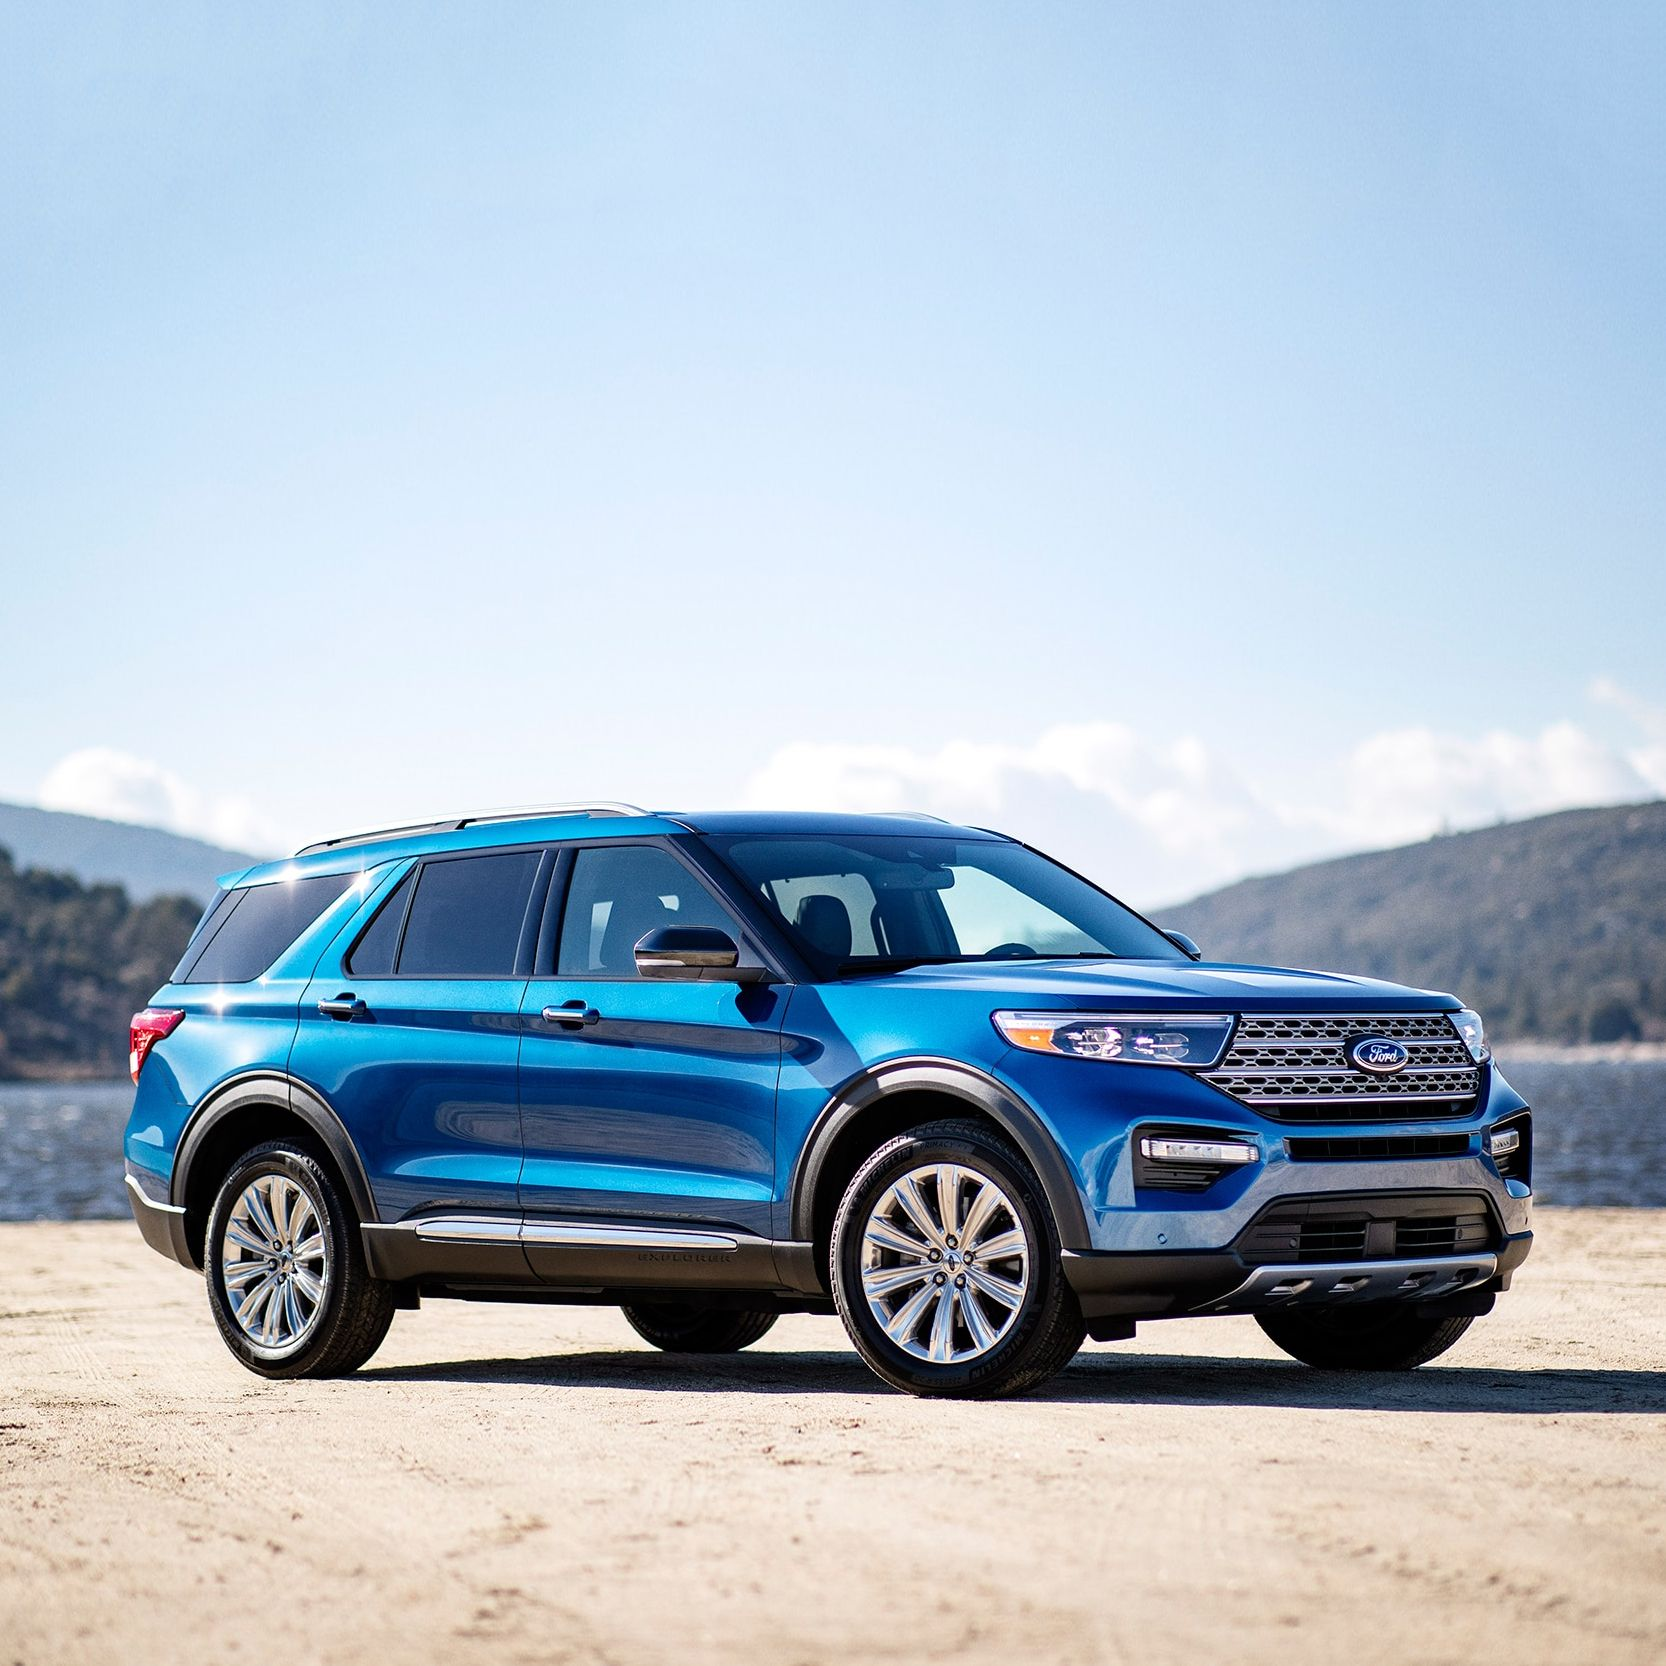 The Switch To A Rear Drive Architecture Has Done The 2020 Ford Explorer A World Of Good We Just Wish You Could Tell By Looking At It Noboringcars 2020 F